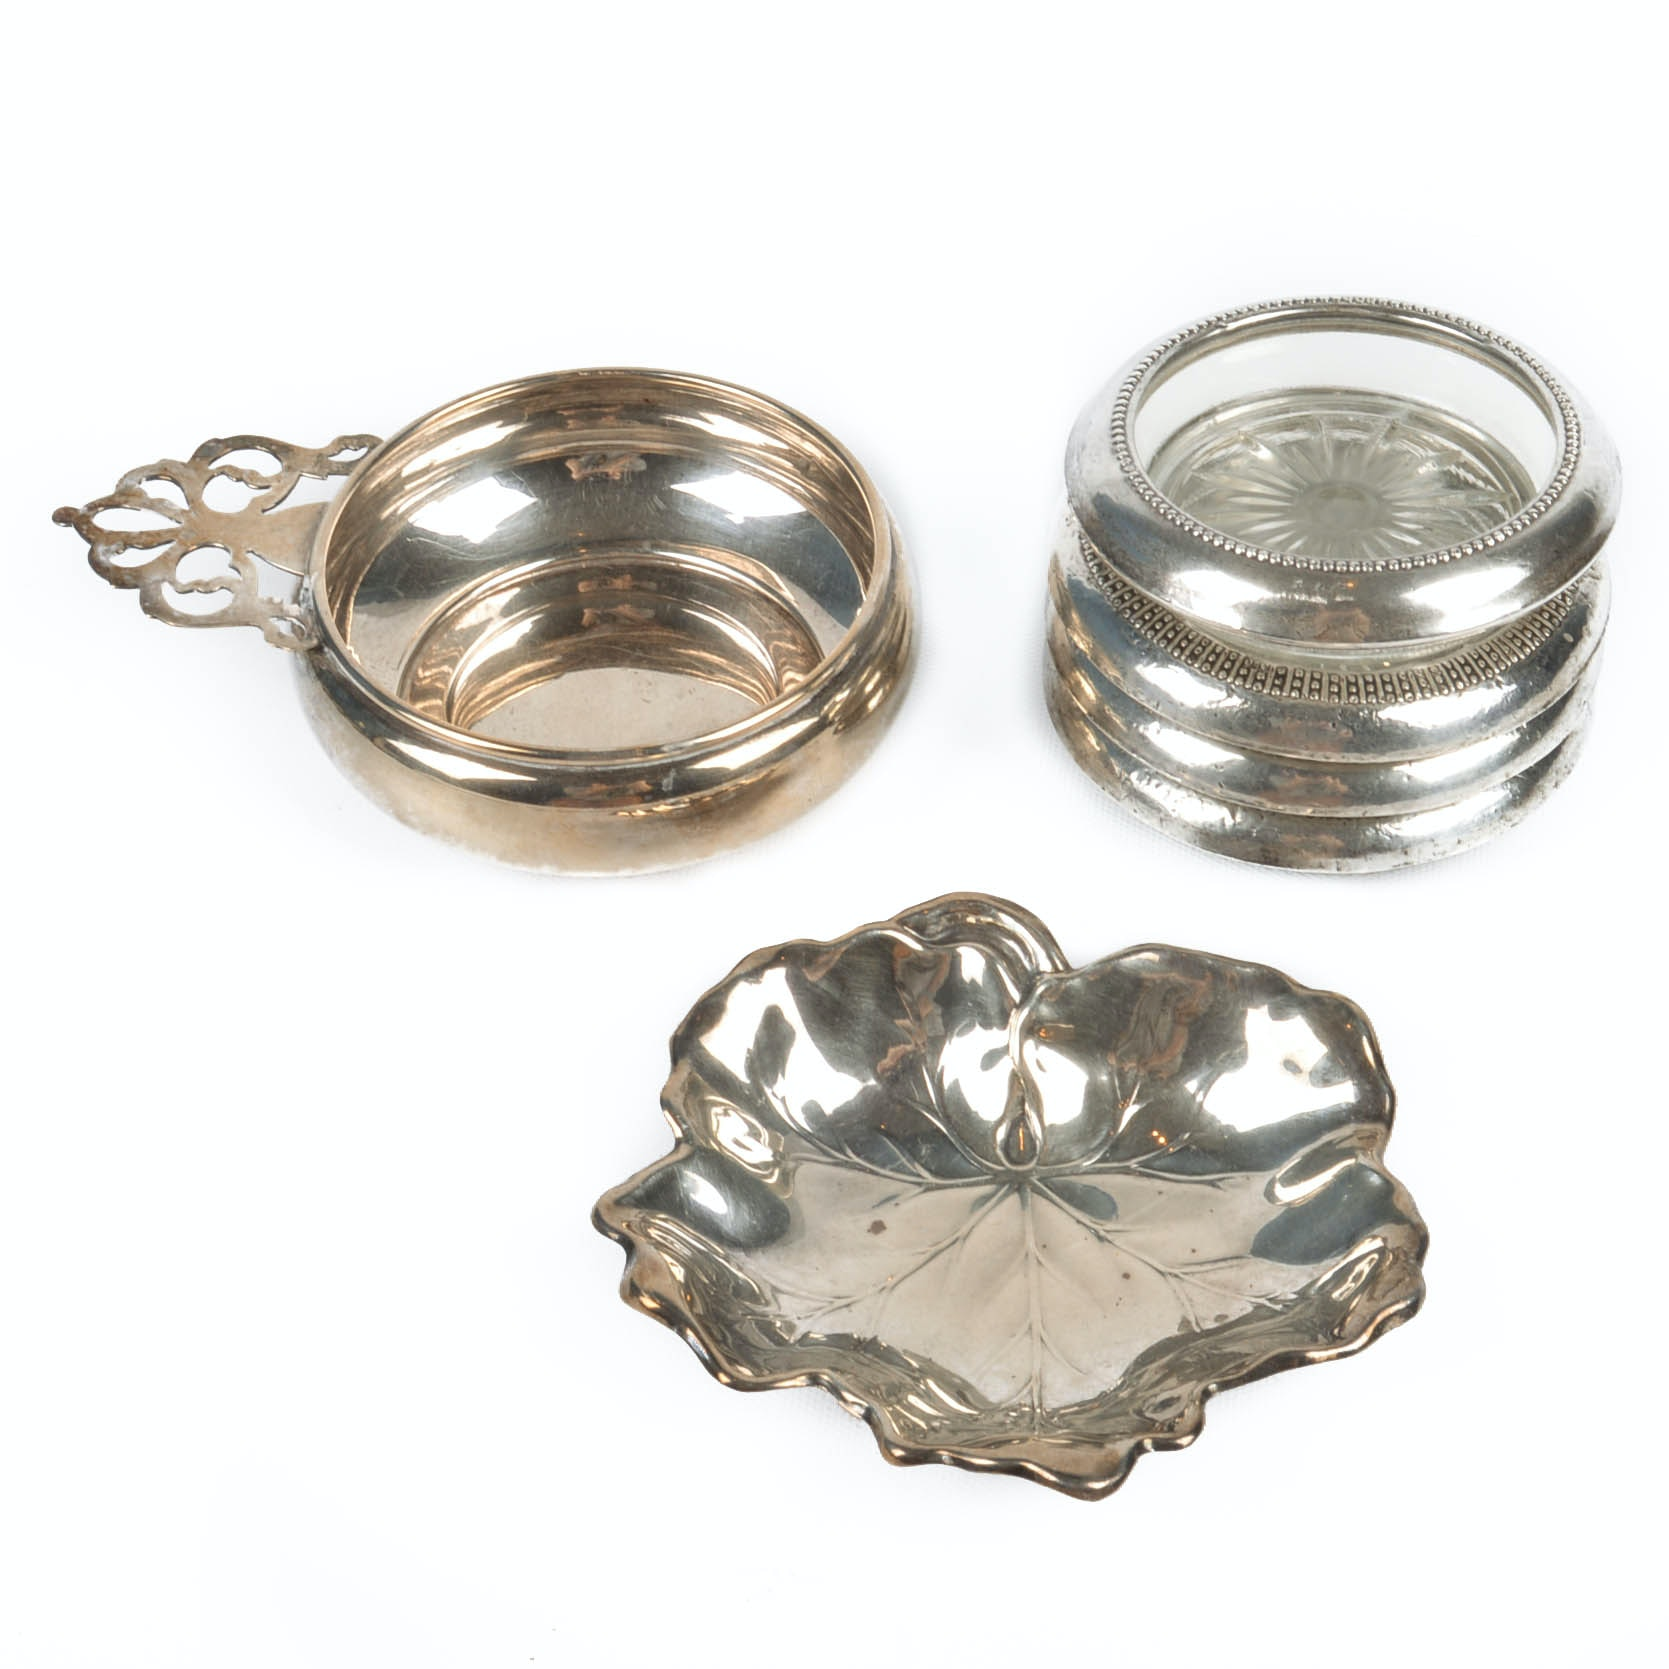 Reed & Barton and Fisher Sterling Silver Table Ware